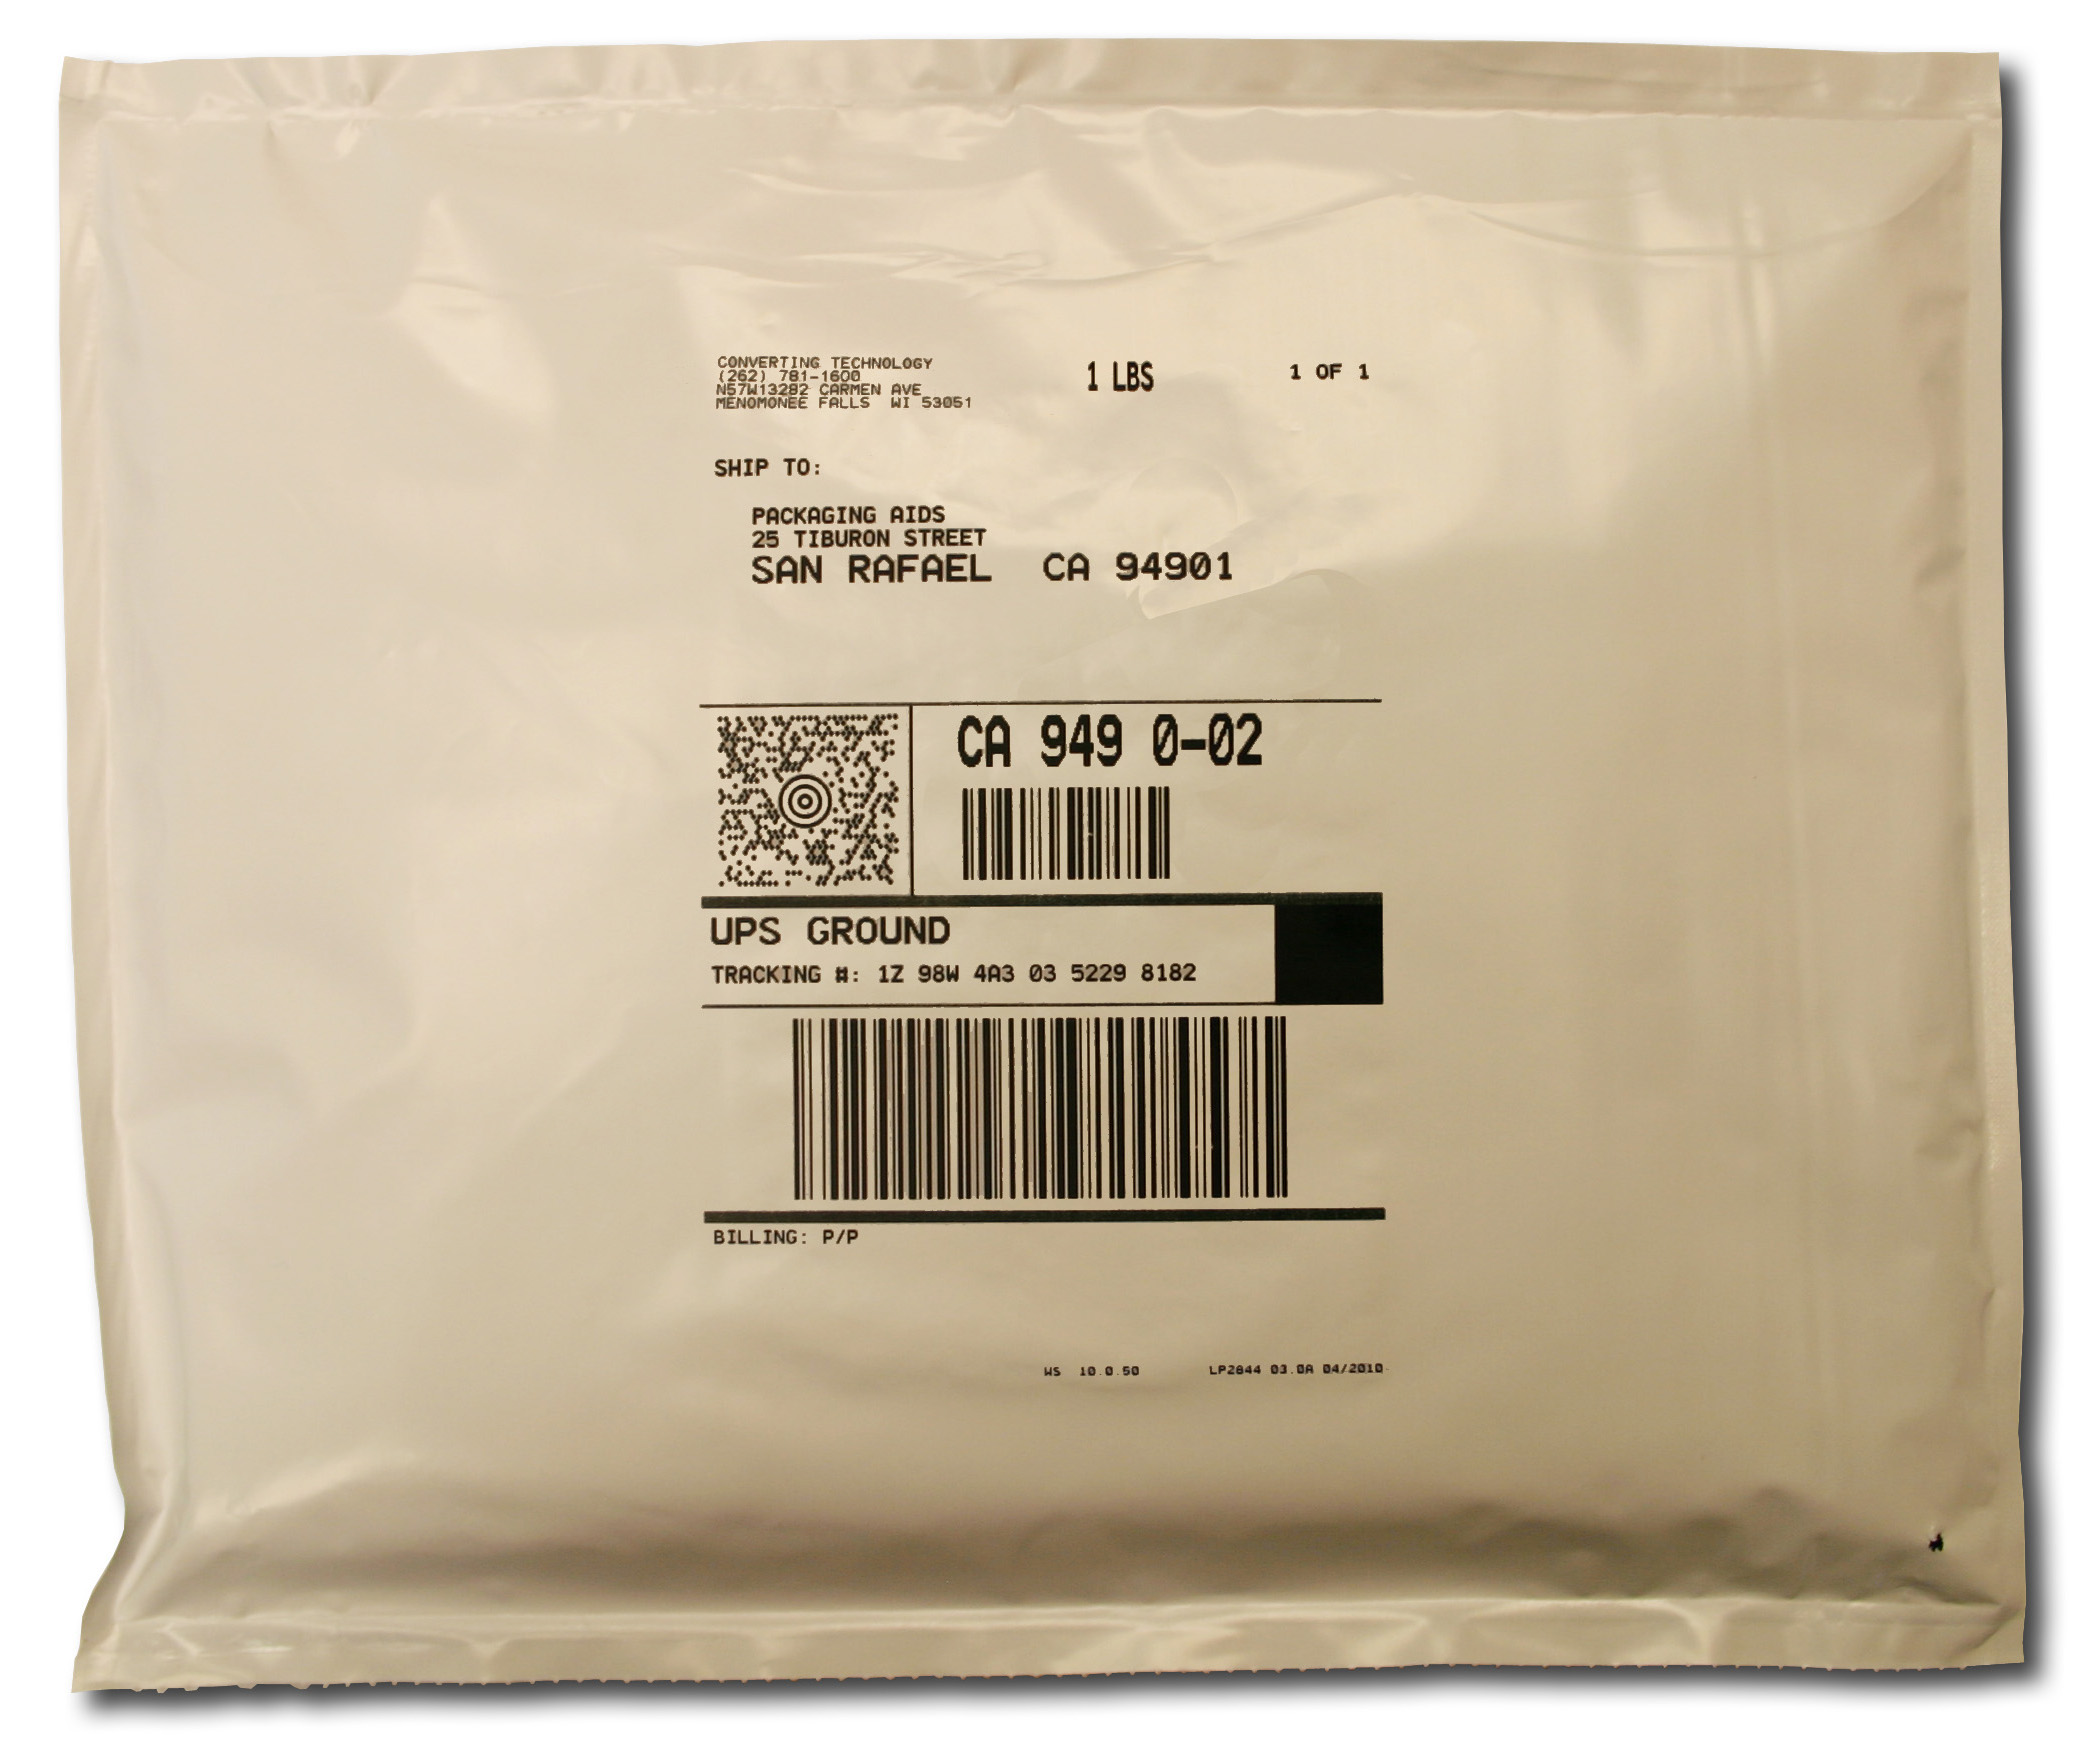 Mailer Rollbag Poly For Mail Order Fulfillment Auto Baggers